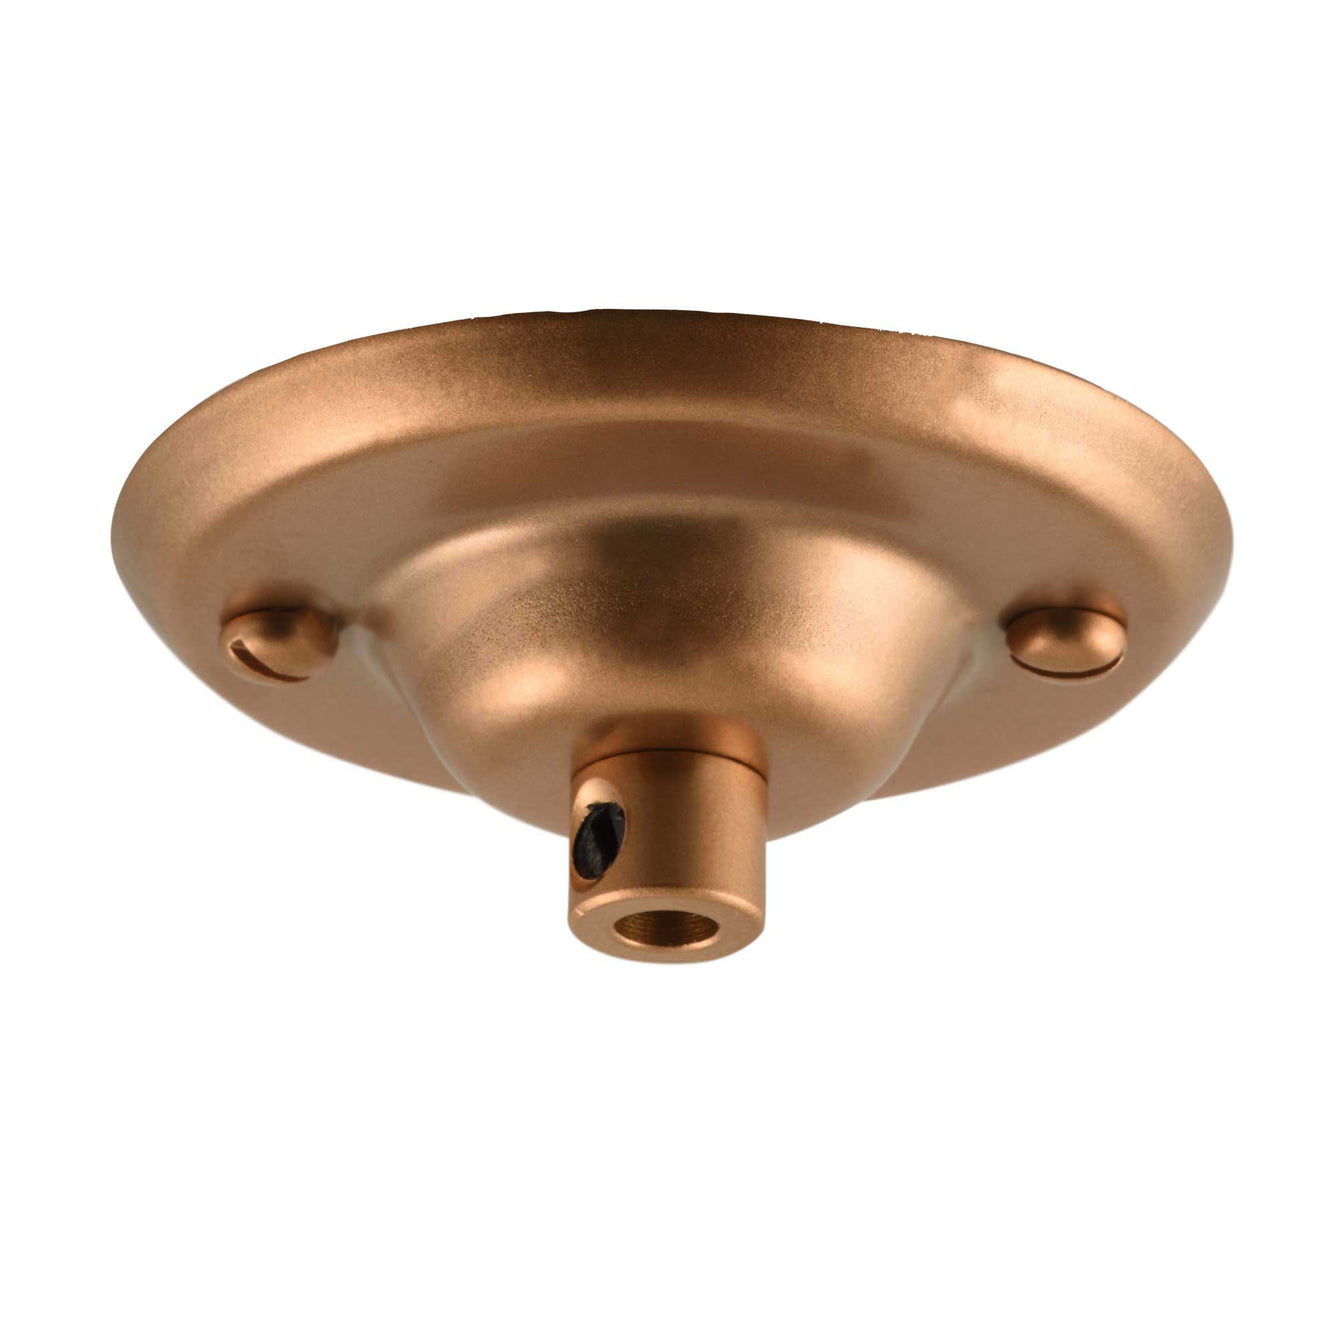 ElekTek 75mm Diameter Ceiling Plate with Cord Grip Metallic Finishes Powder Coated Colours Pink